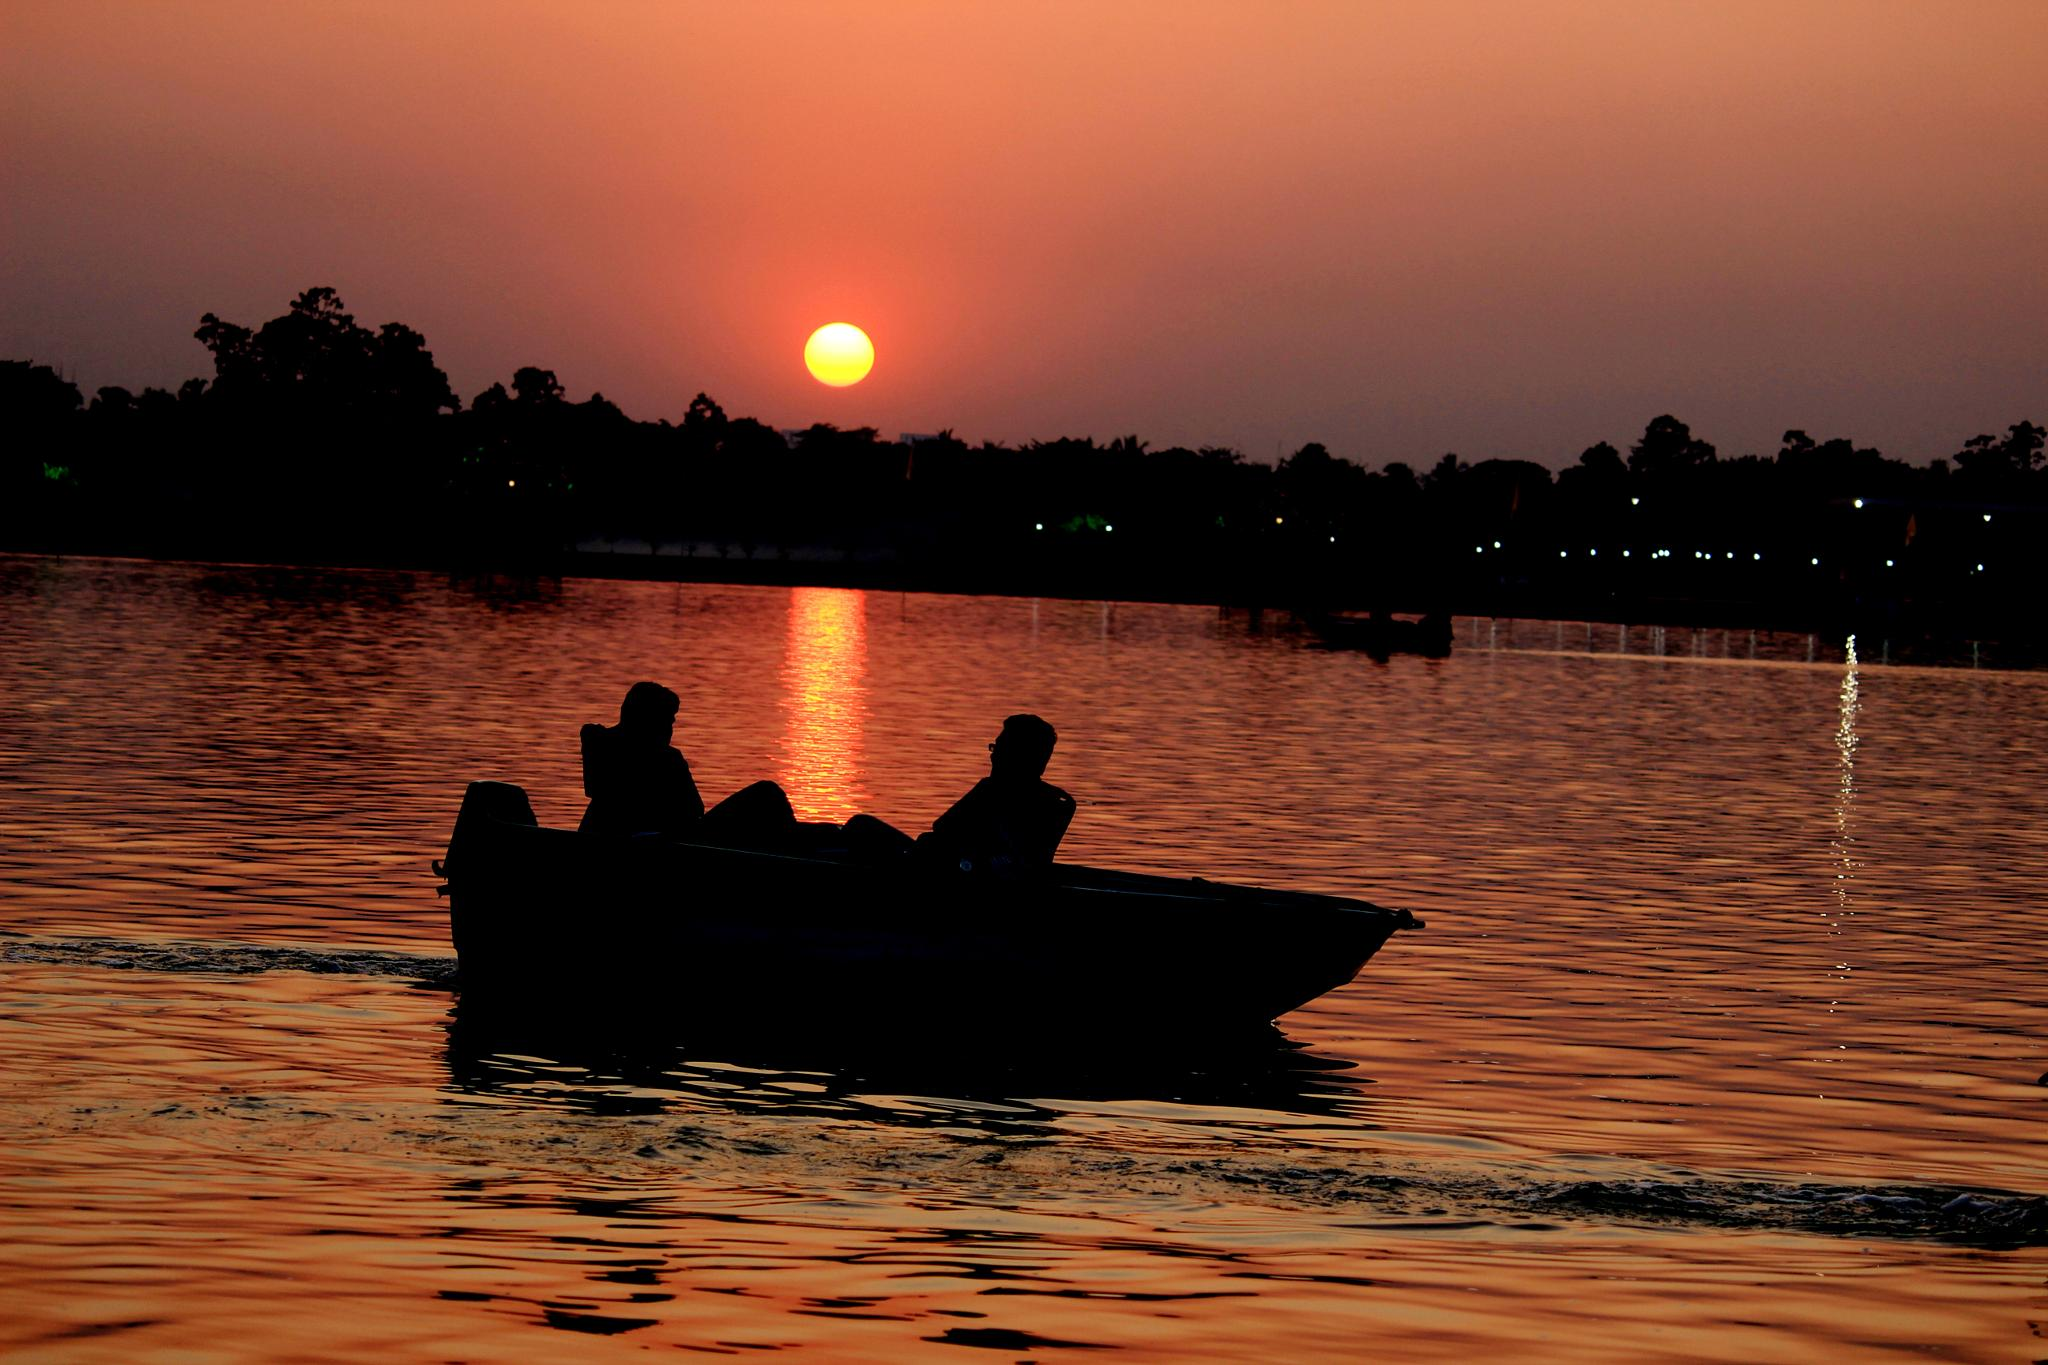 Let's Share the Setting Sun :) by Sulagna D